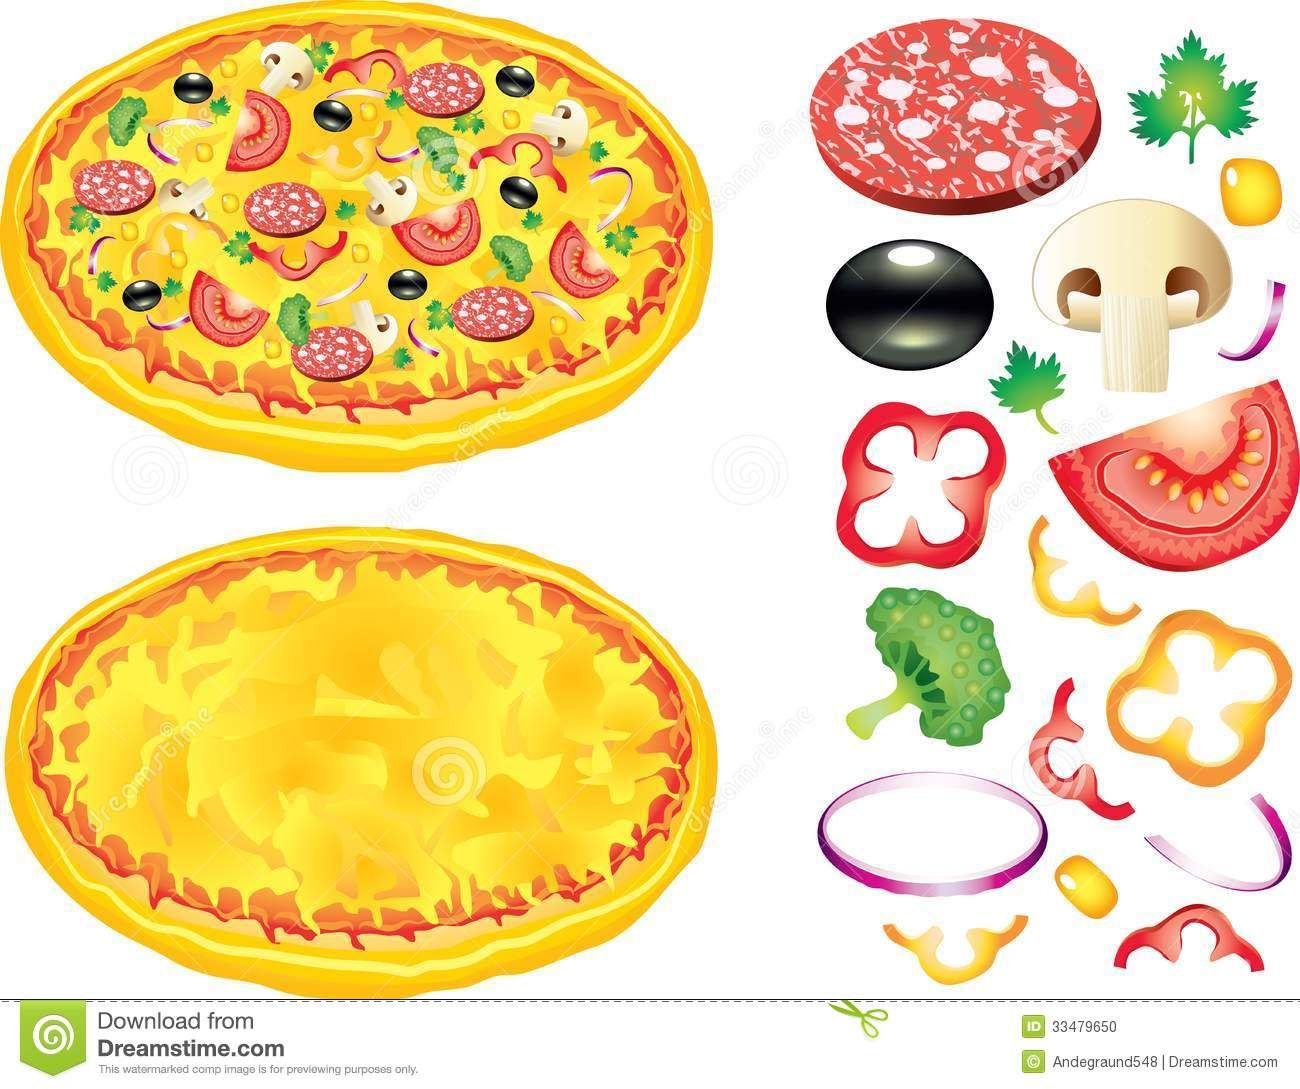 Mushrooms clipart pizza topping. Toppings clip art free